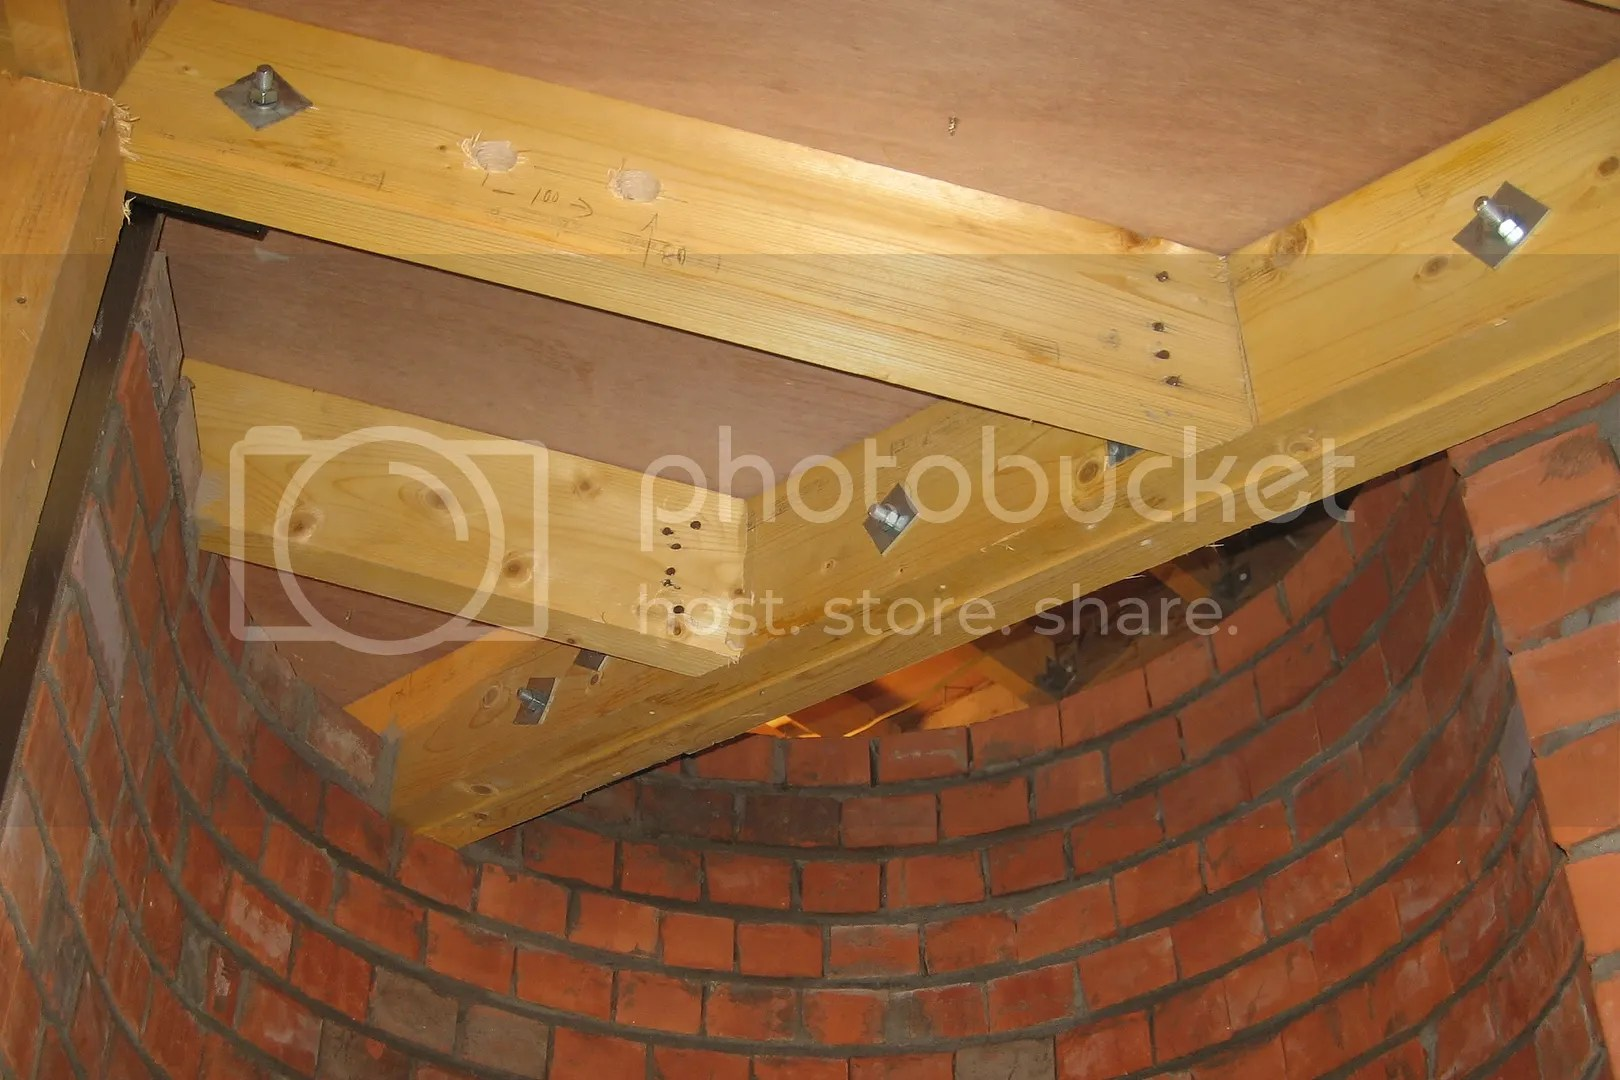 basement structure with bricks and beams